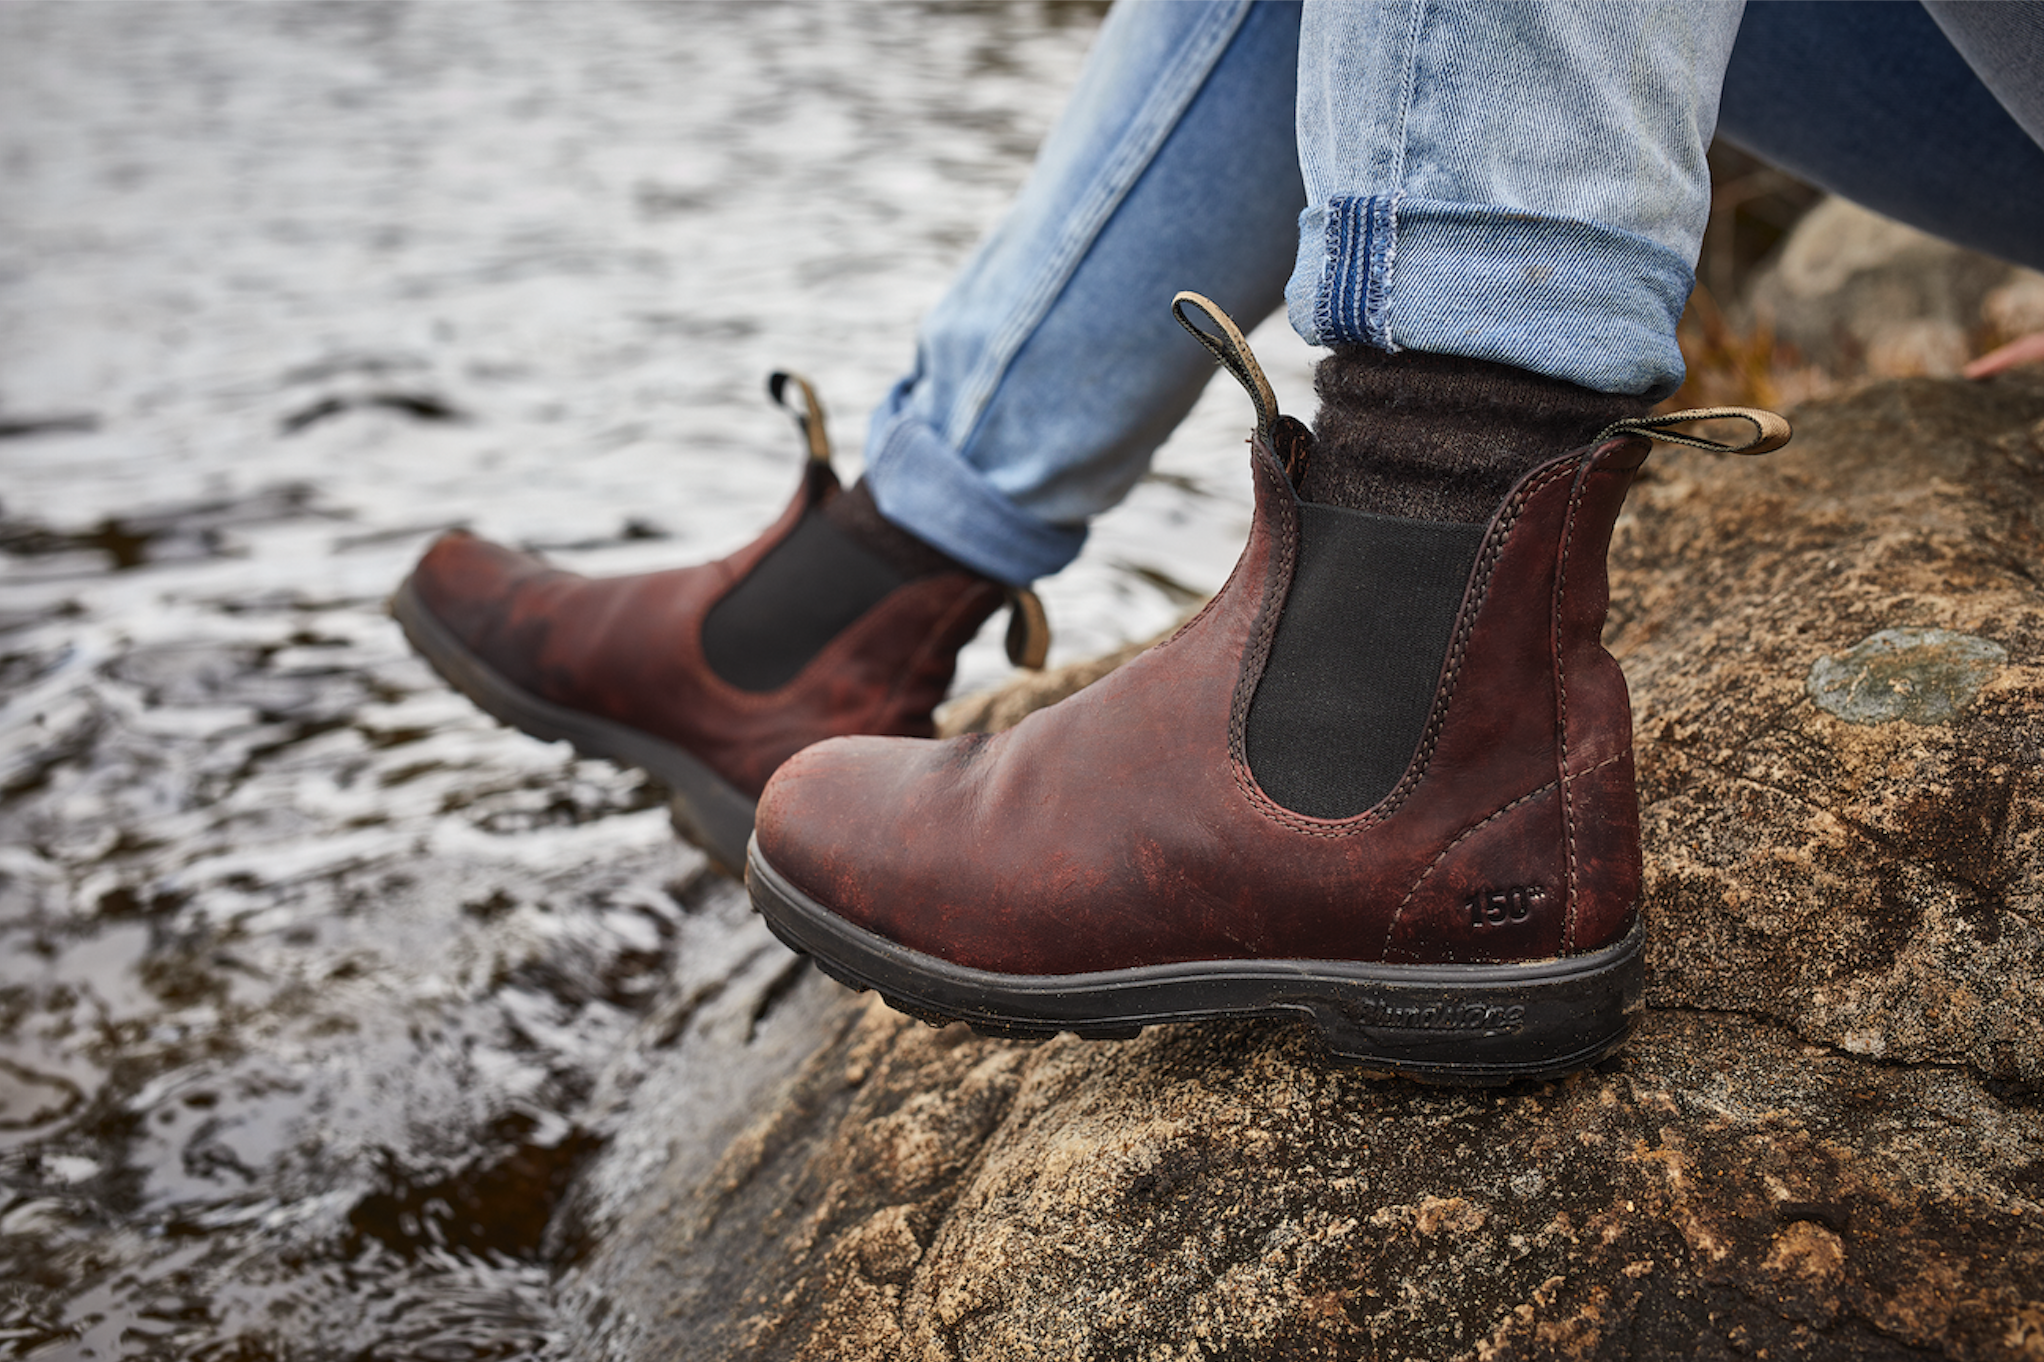 "When it comes to the Blundstone Chelsea Boot, Emily White, Owner of the Milford outdoor gear retailer Roads Rivers and Trails notes, ""These stylish yet functional boots are our go-to for any type of adventure. We wear these in the store and on the trail for comfort, style, and durability."" Blundstone was founded in 1870 (before the first prototype of the telephone or the lightbulb was invented). Their elastic is designed to last being pulled on and off 10,000 times. /{&nbsp;}<a  href=""https://www.blundstone.com/"" target=""_blank"">Website{&nbsp;}</a>/ Price: $190 / Image courtesy of Blundstone // Published: 12.6.20"